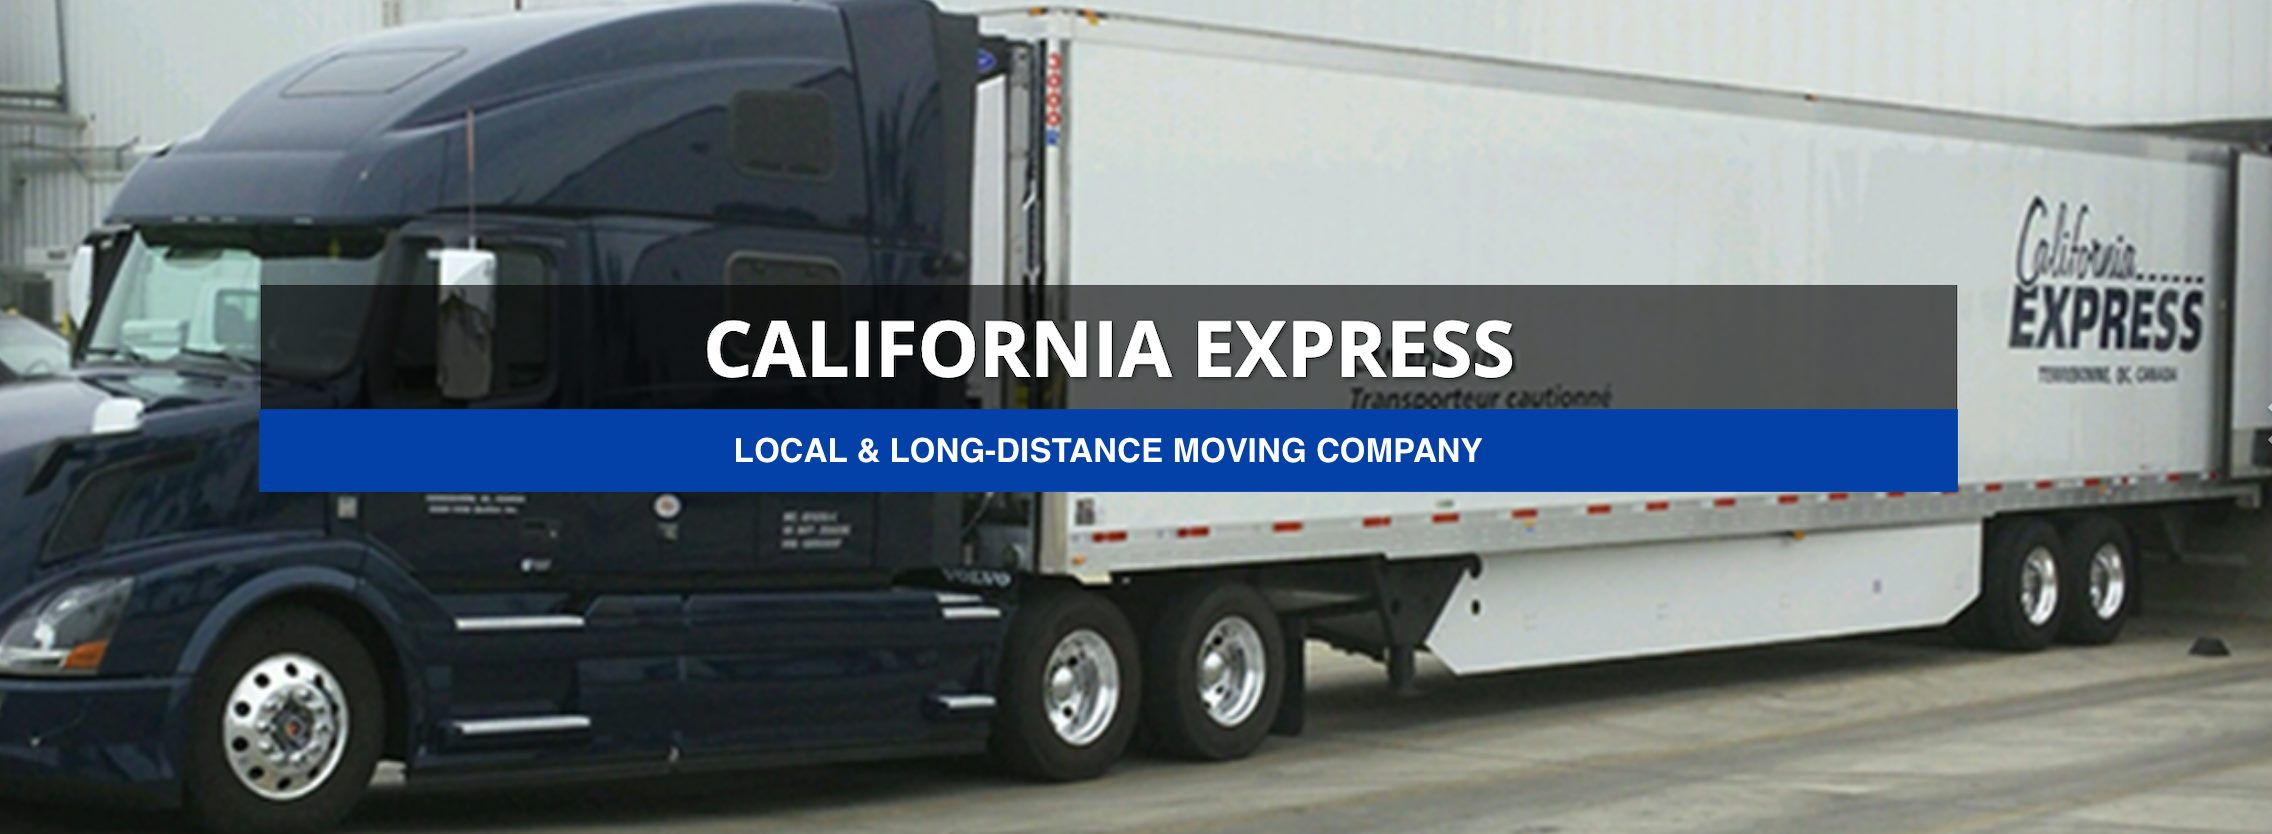 Express Moving Van Lines best moving companies among longdistance movers